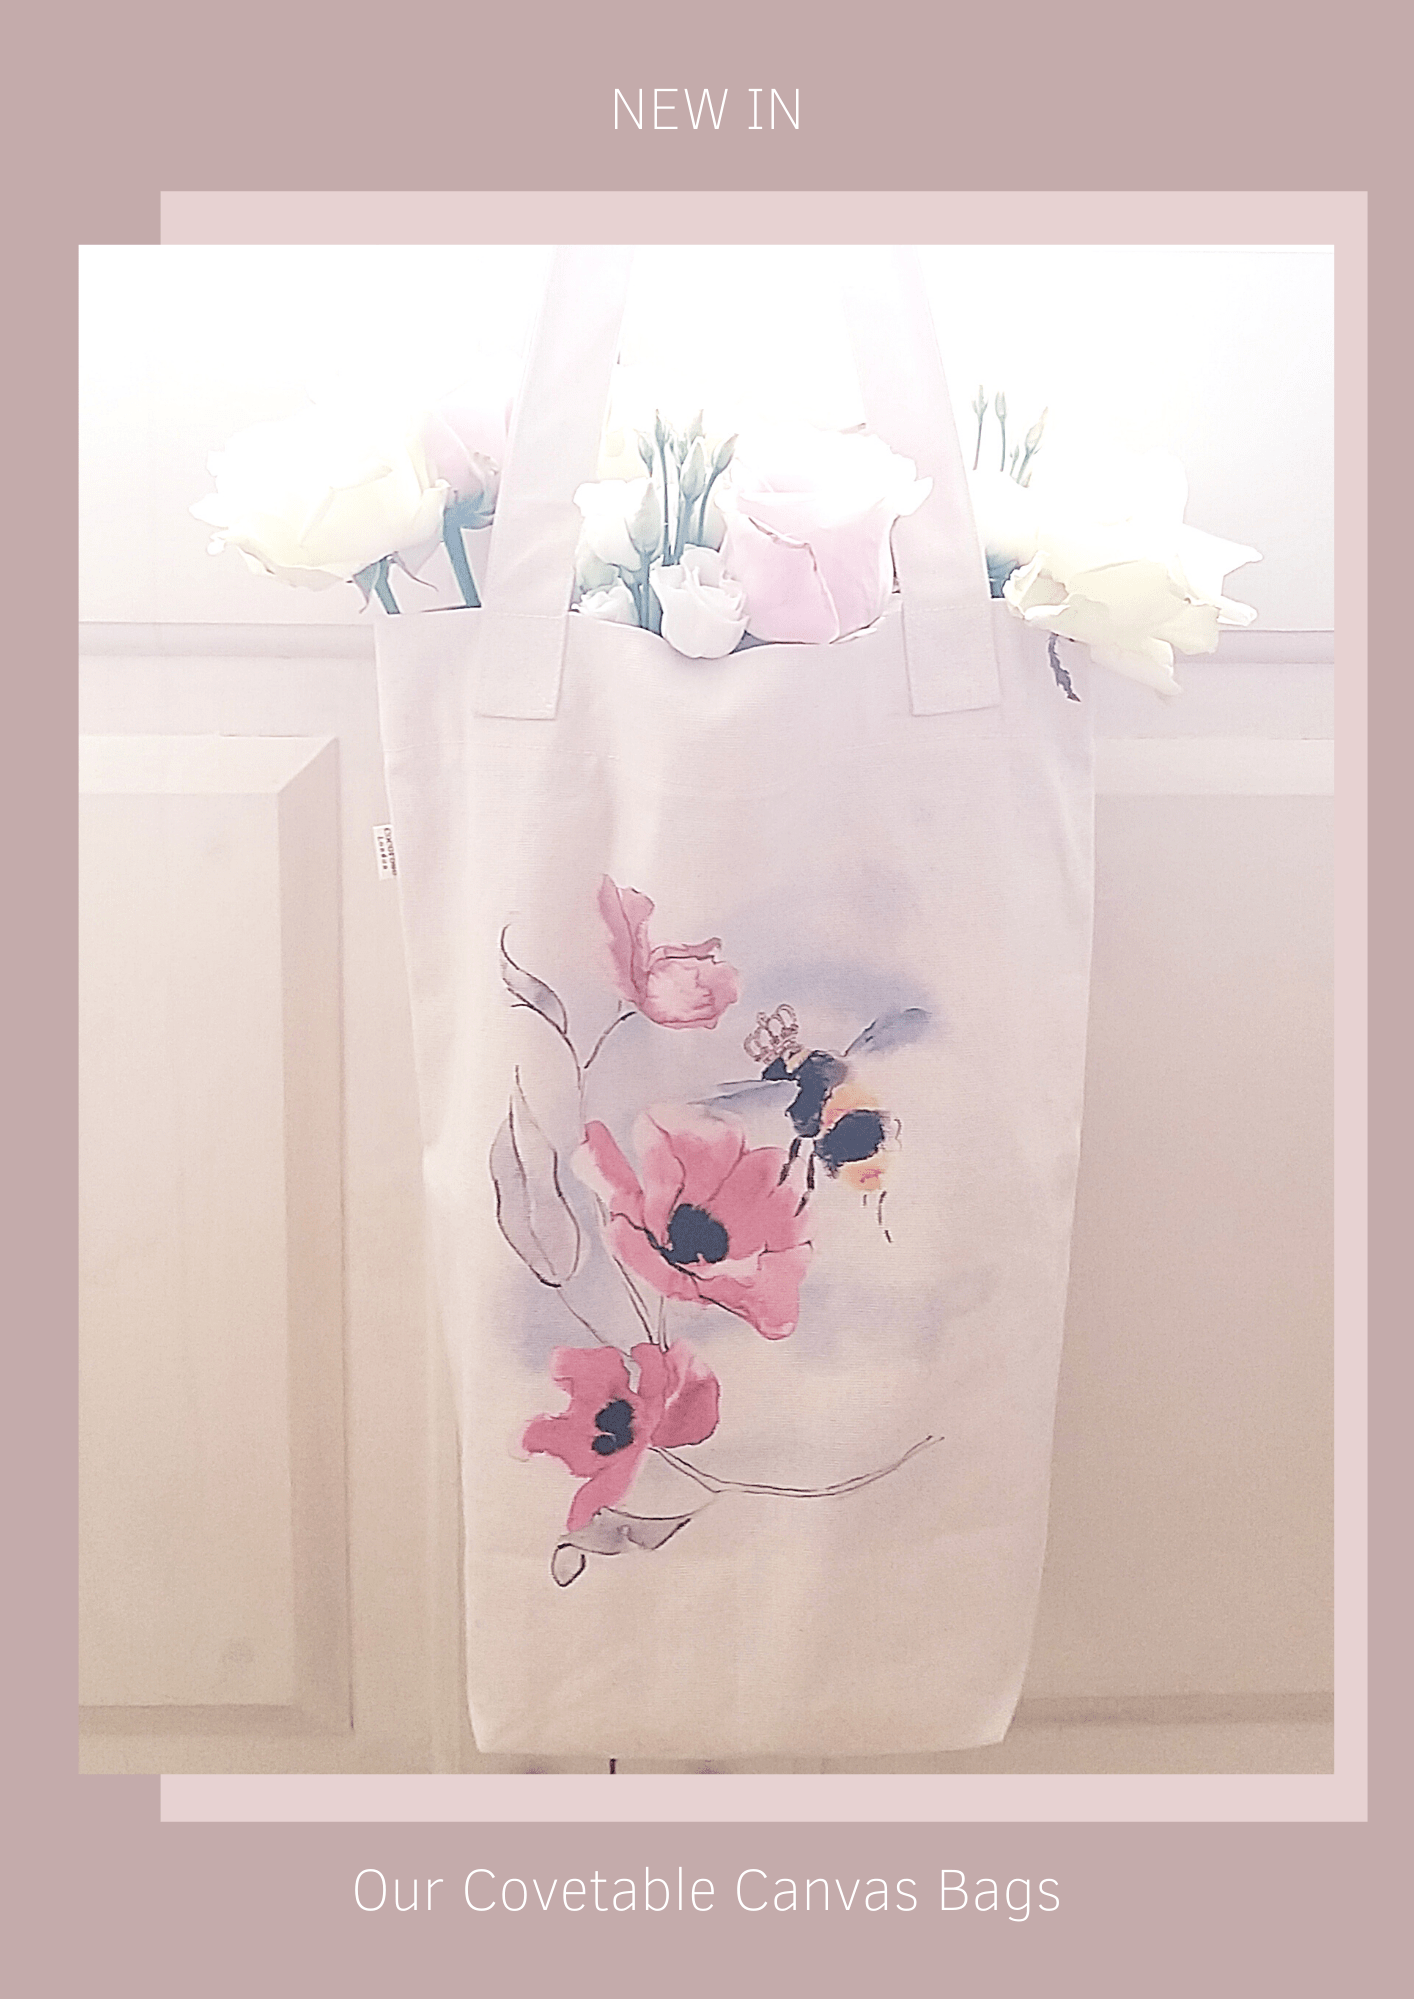 Cocorose London's covetable canvas bags - illustrated and printed canvas shopping bags